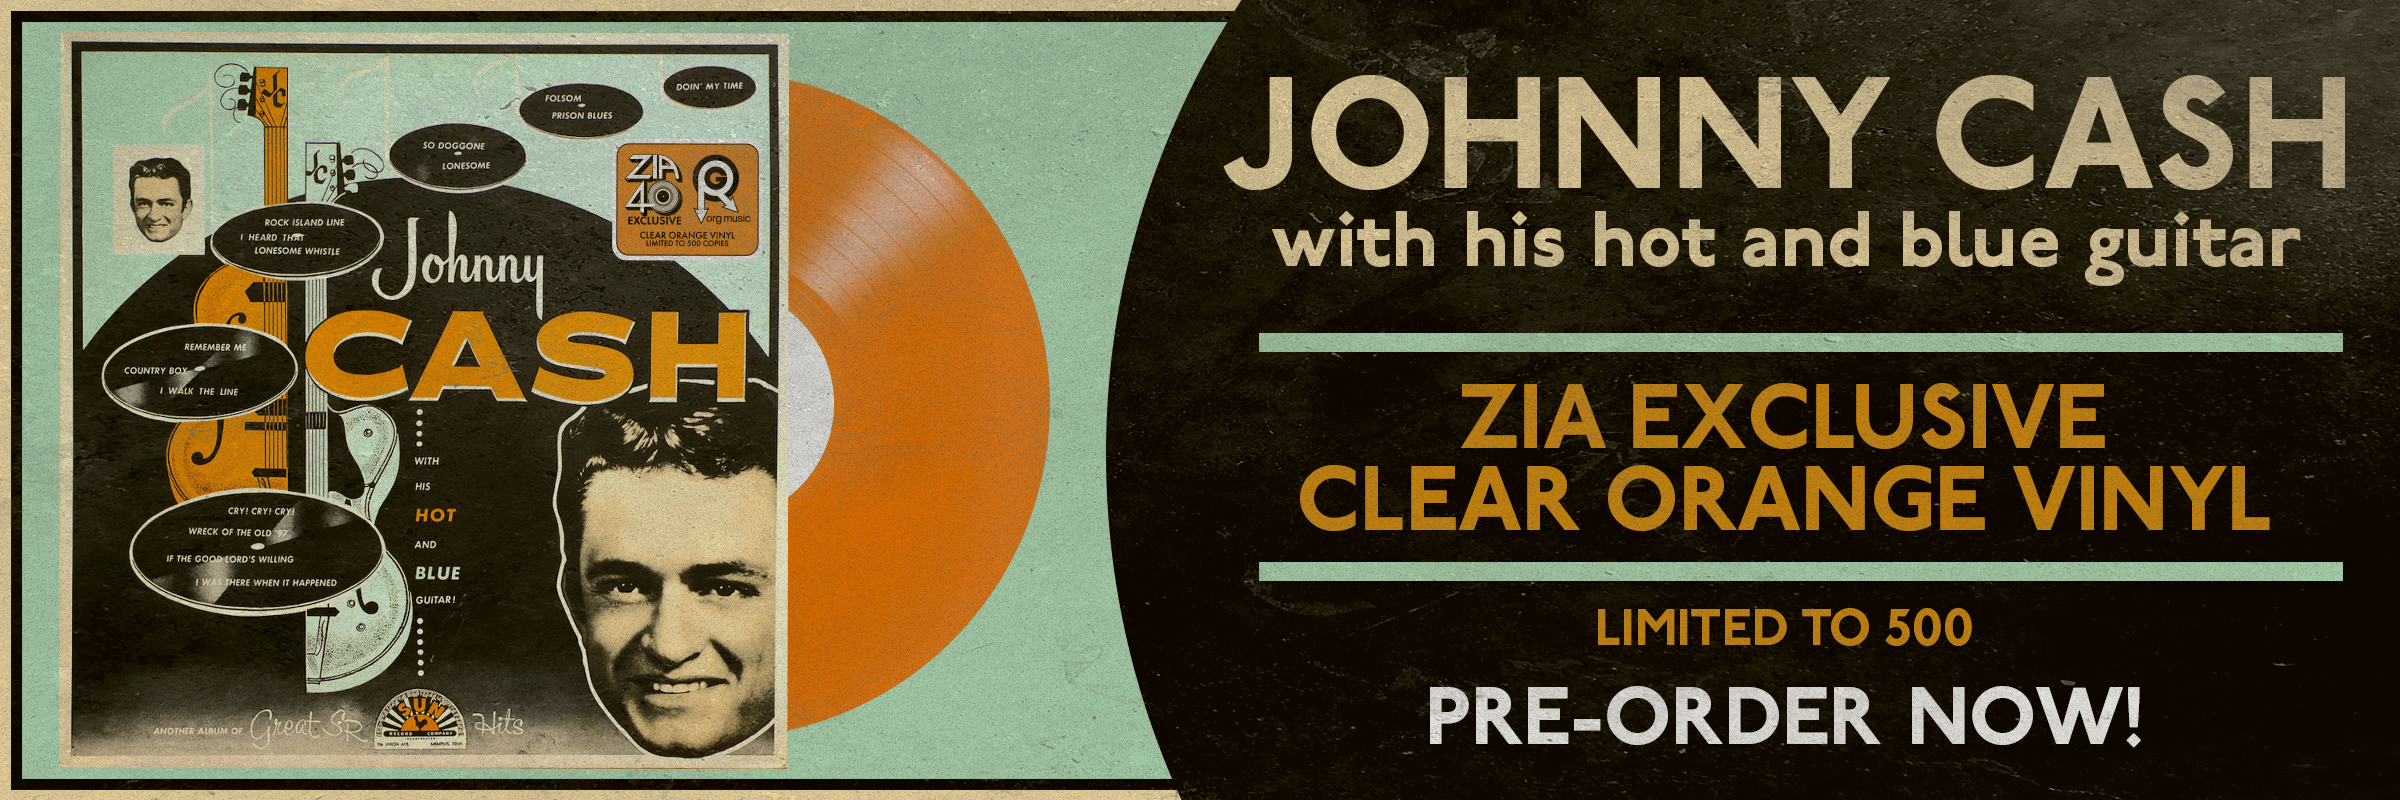 Johnny Cash Zia Vinyl Exclusive